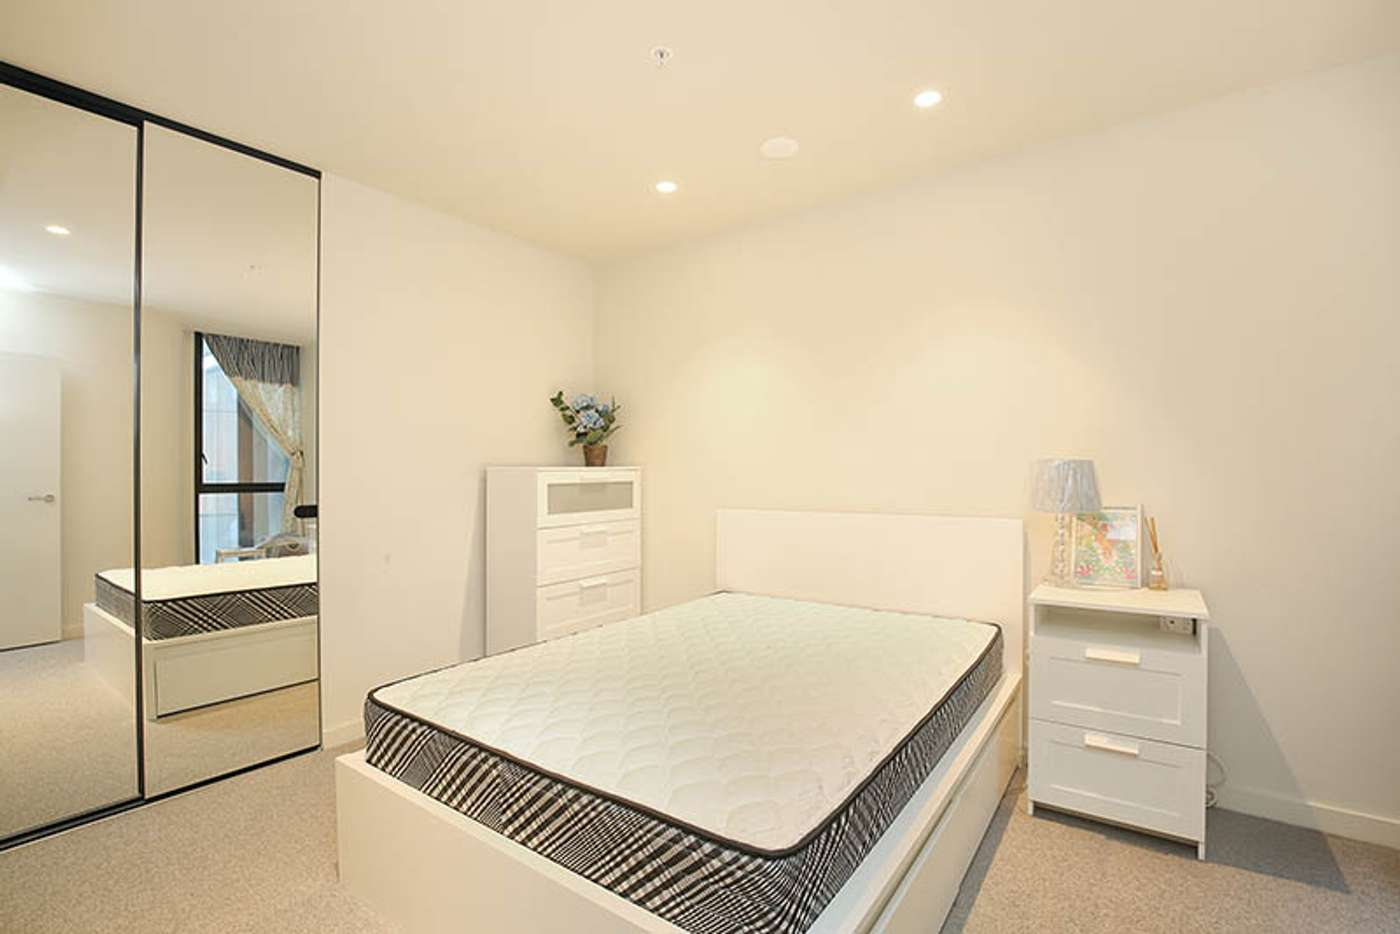 Fifth view of Homely unit listing, 1112/8 Daly Street, South Yarra VIC 3141